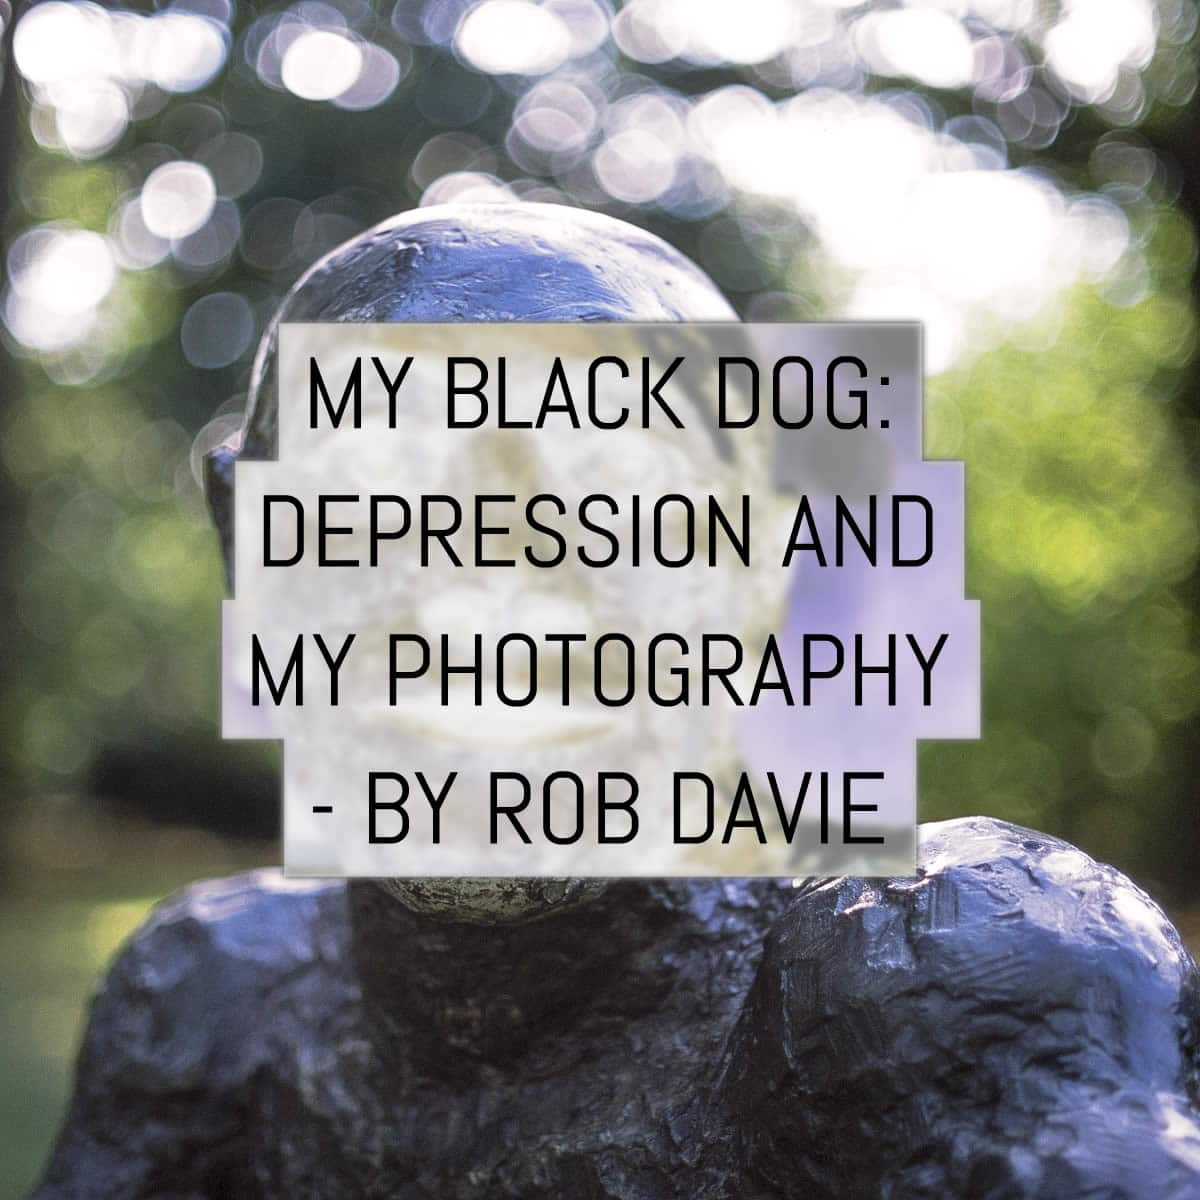 Cover - My Black Dog -- Depression and my photography by Rob Davie